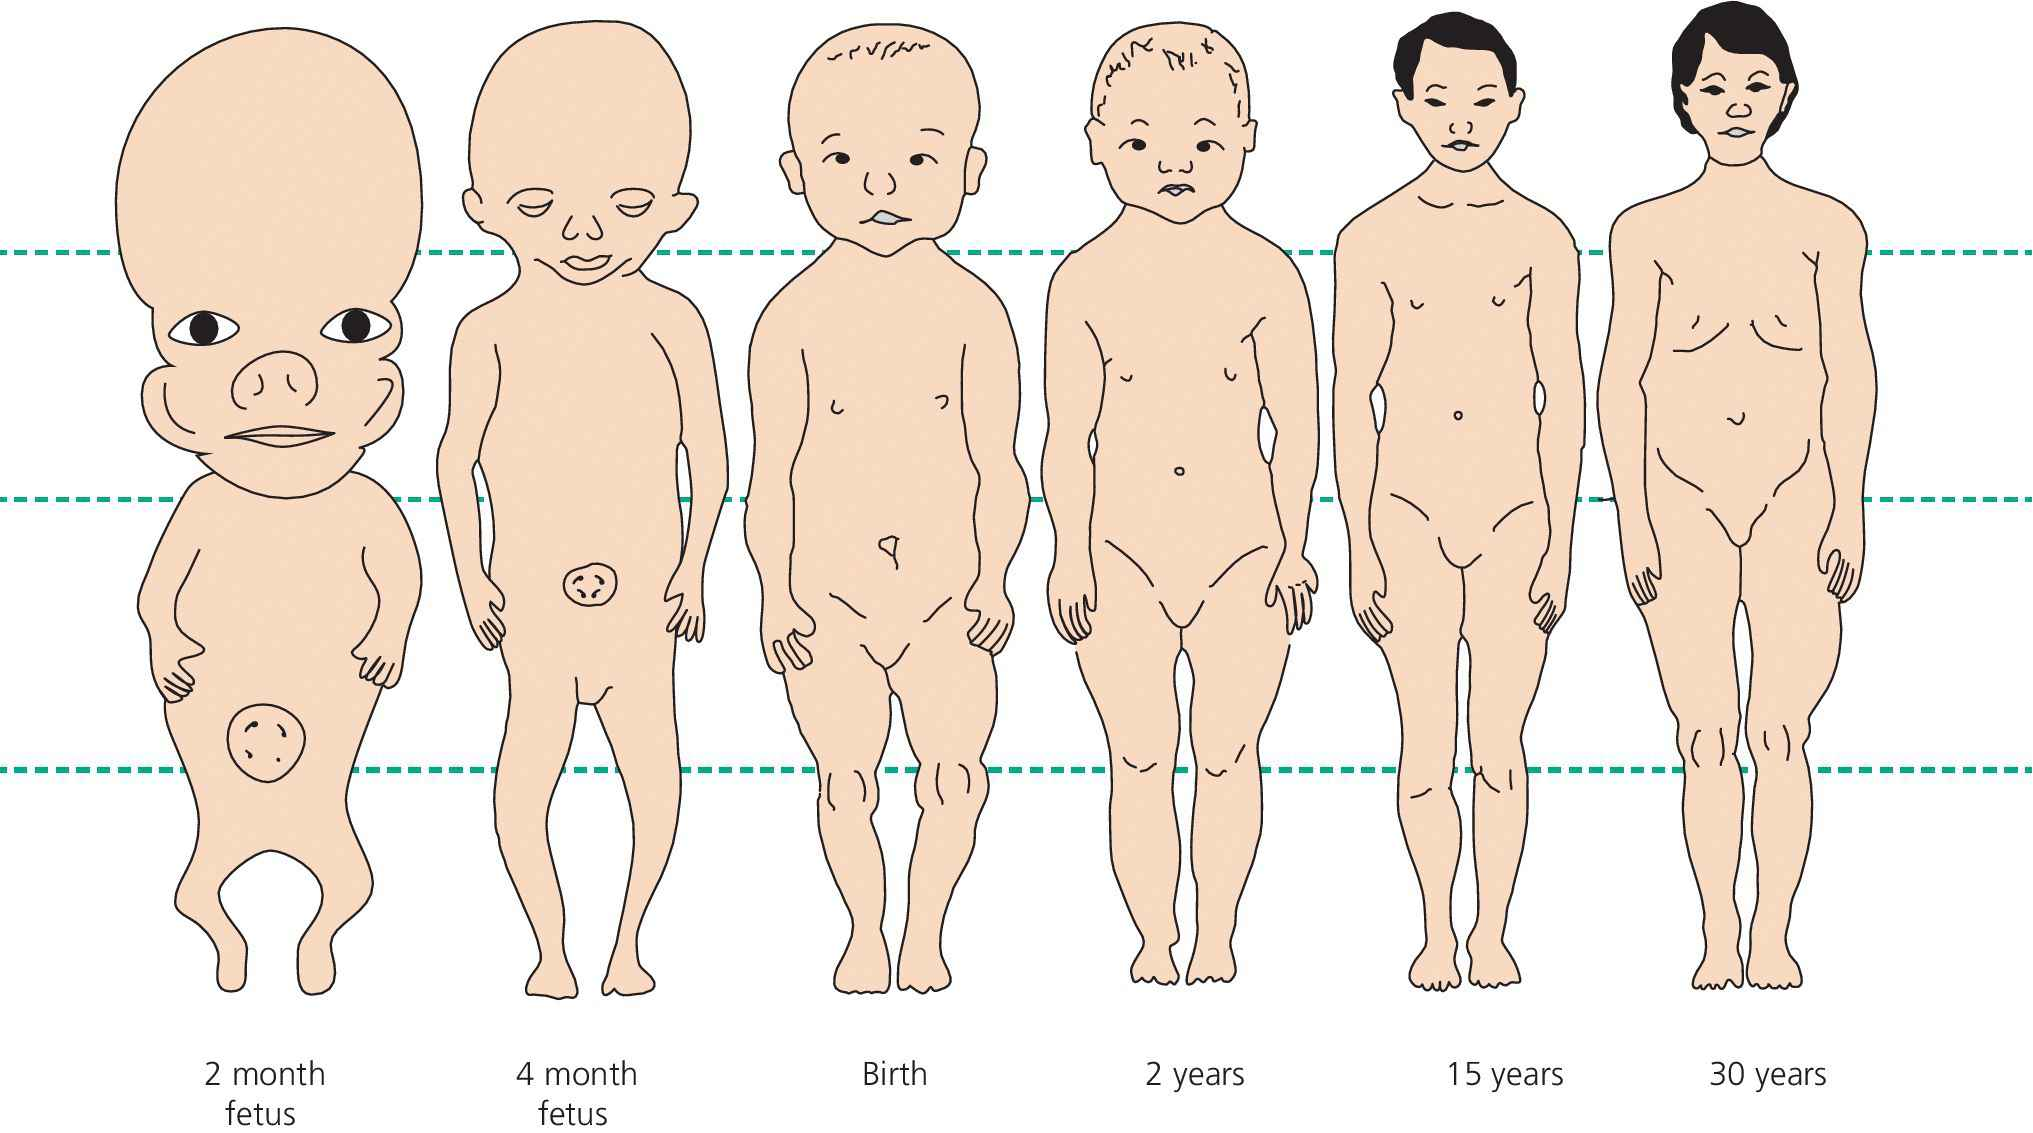 Illustration of the changes in human body proportions during development and growth. It features a human at 2 months, at 4 months, at birth, at 2 years, at 15 years, and at 30 years.